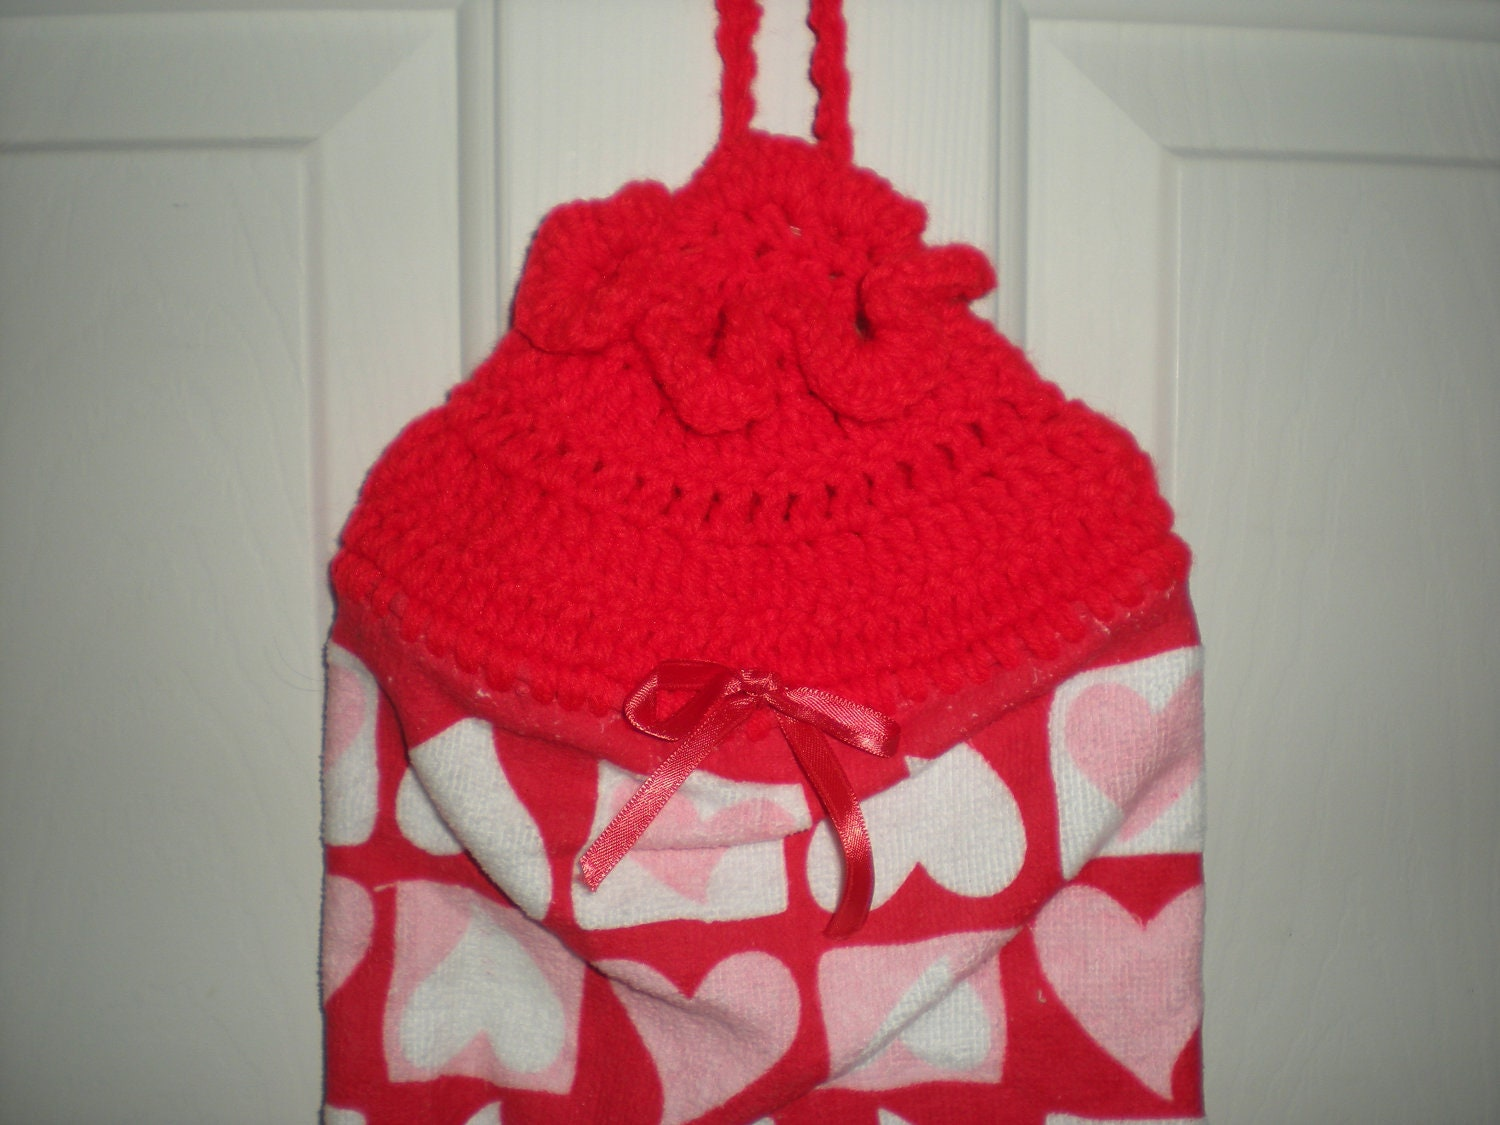 Crochet Pattern Plastic Bag Holder : Crochet Plastic Bag Holder Red with Hearts by ...